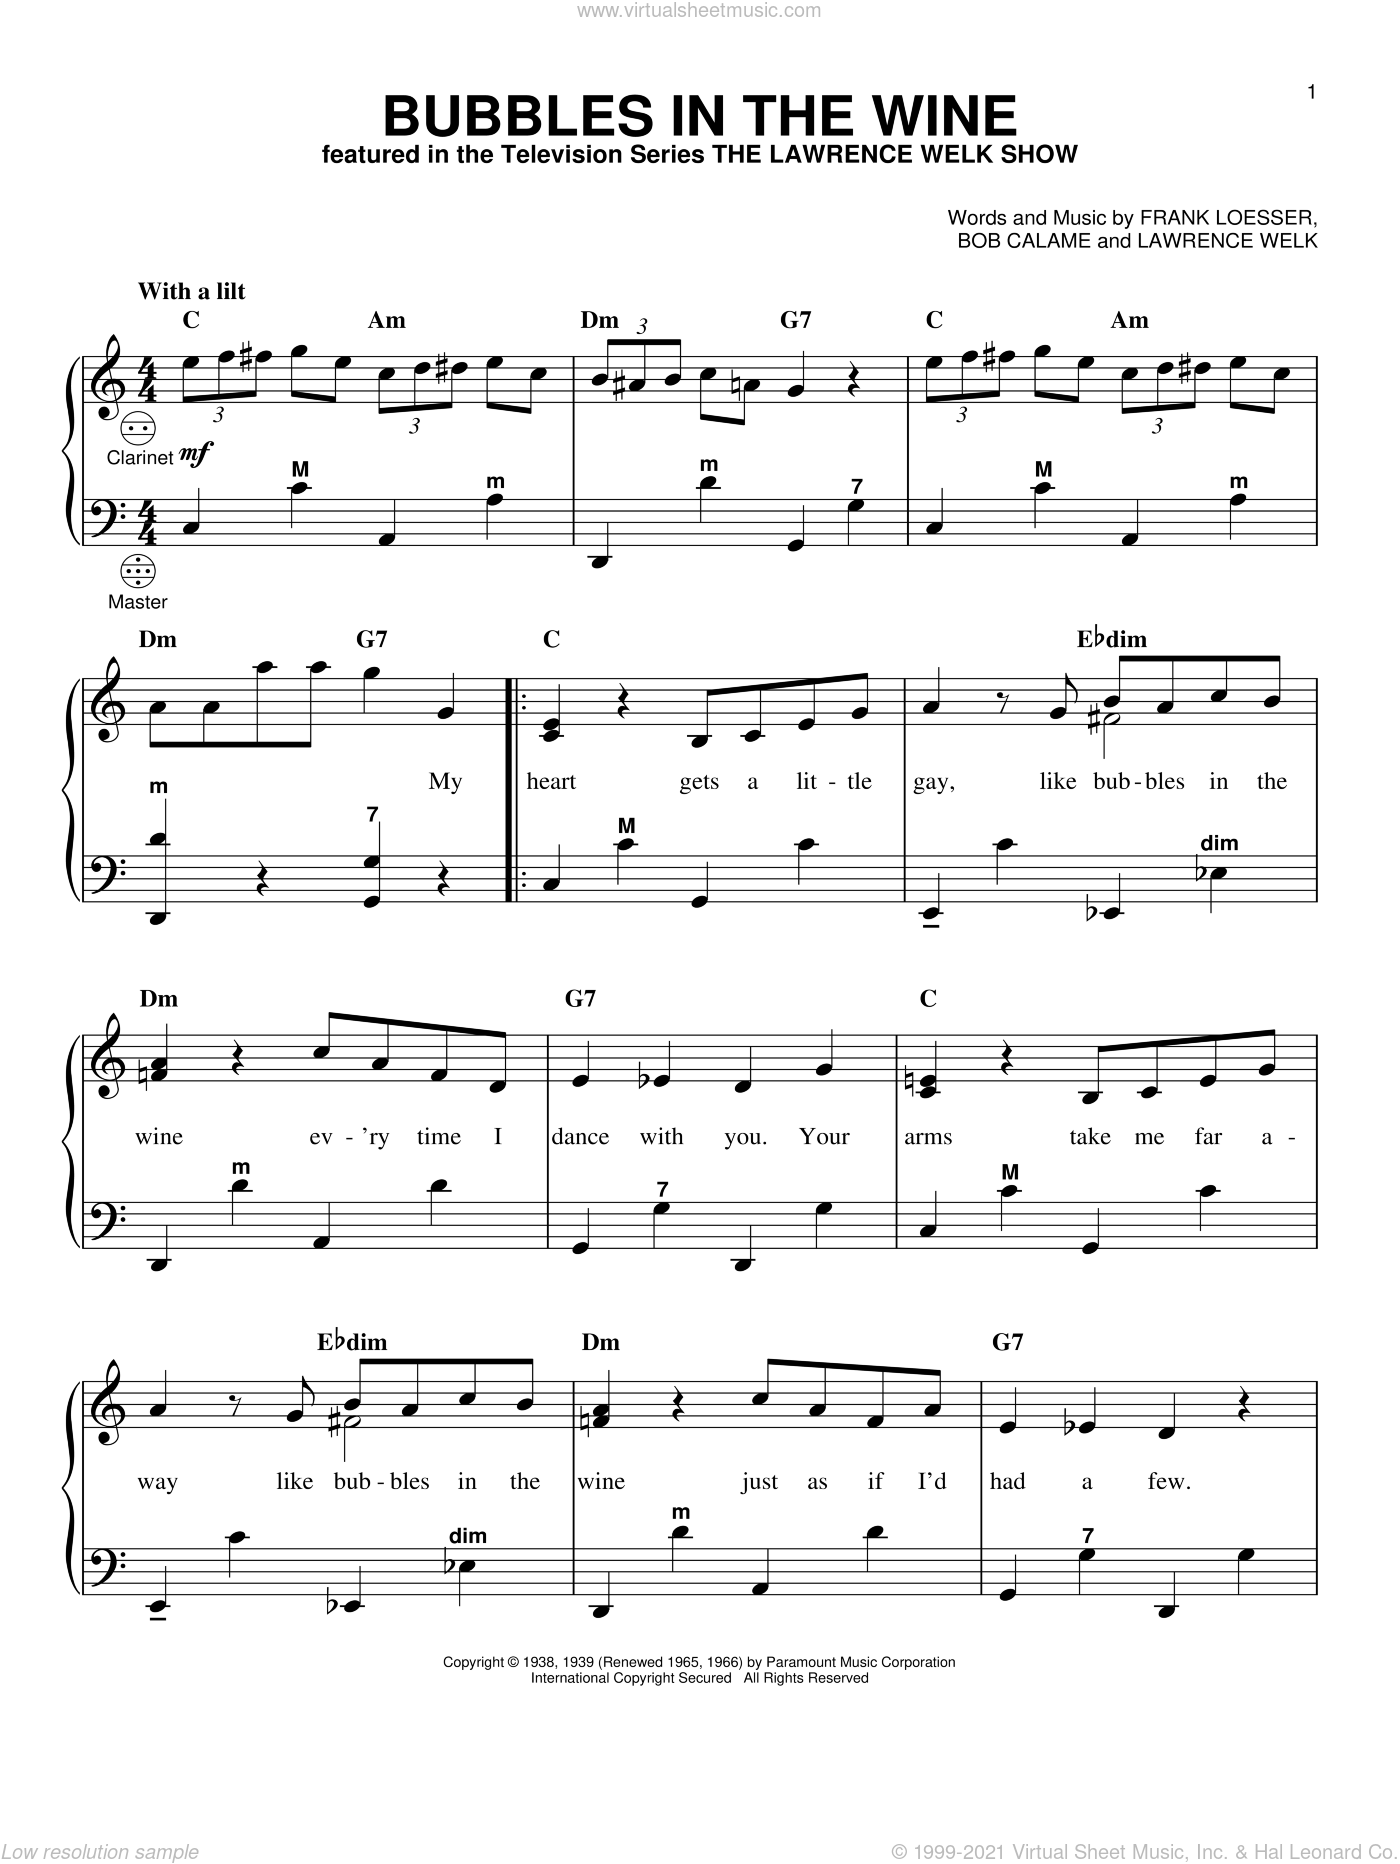 Bubbles In The Wine sheet music for accordion by Frank Loesser